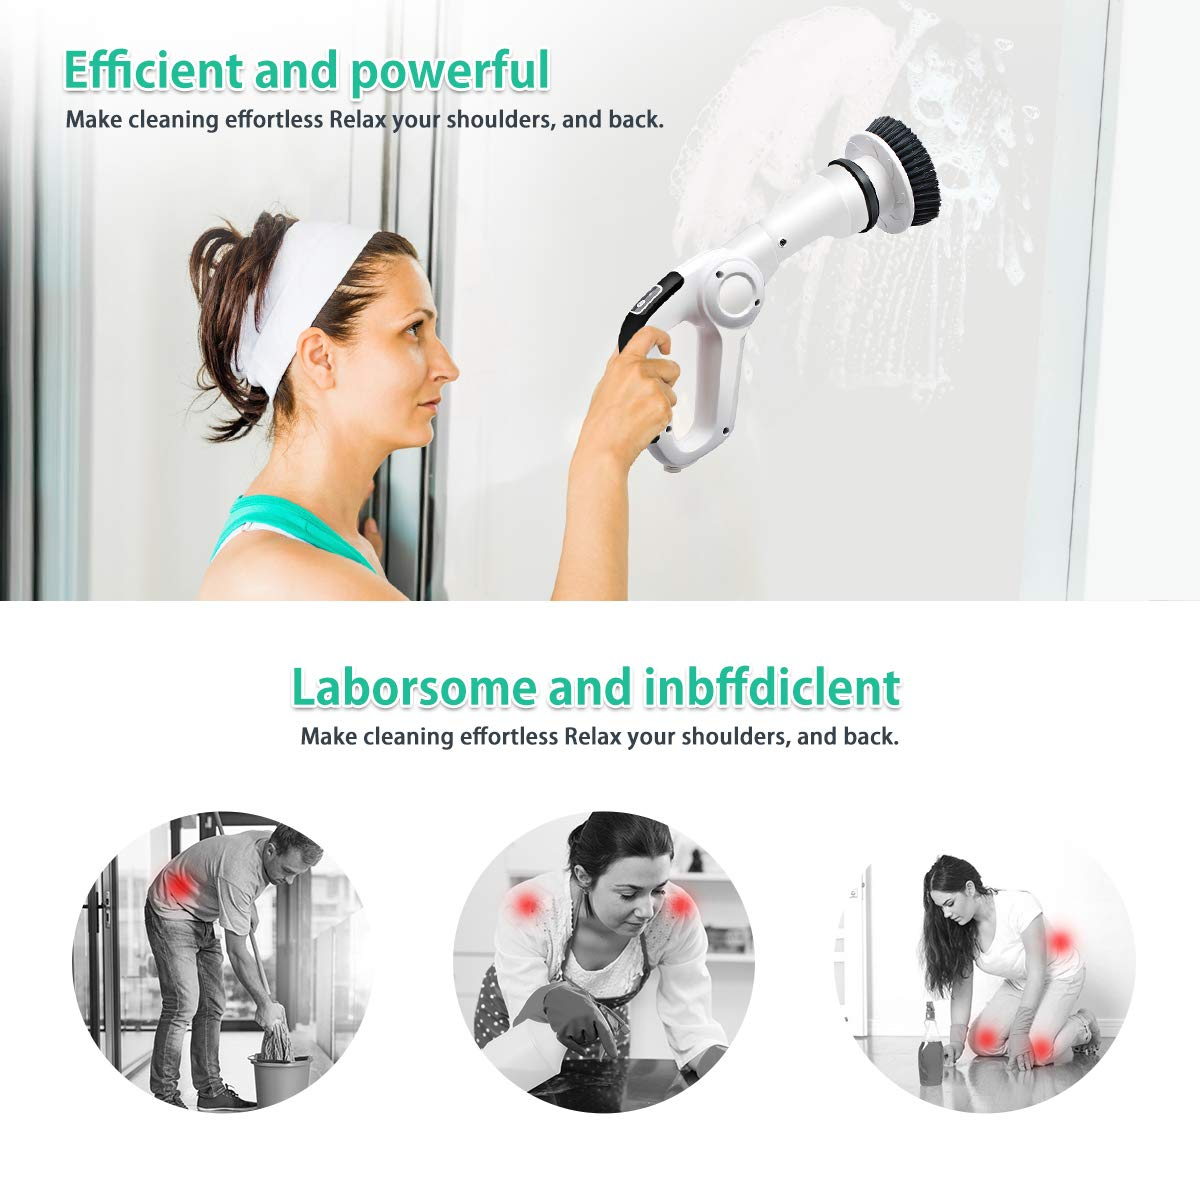 MECO Electric Spin Scrubber Power Cordless Tub and Tile Scrubber, 360 Handheld Cleaning supplies with 3 Replaceable Brush Heads, High Rotation for Bathroom, Floor, Kitchen, Car, Sink, Wall, Window by MECO (Image #2)